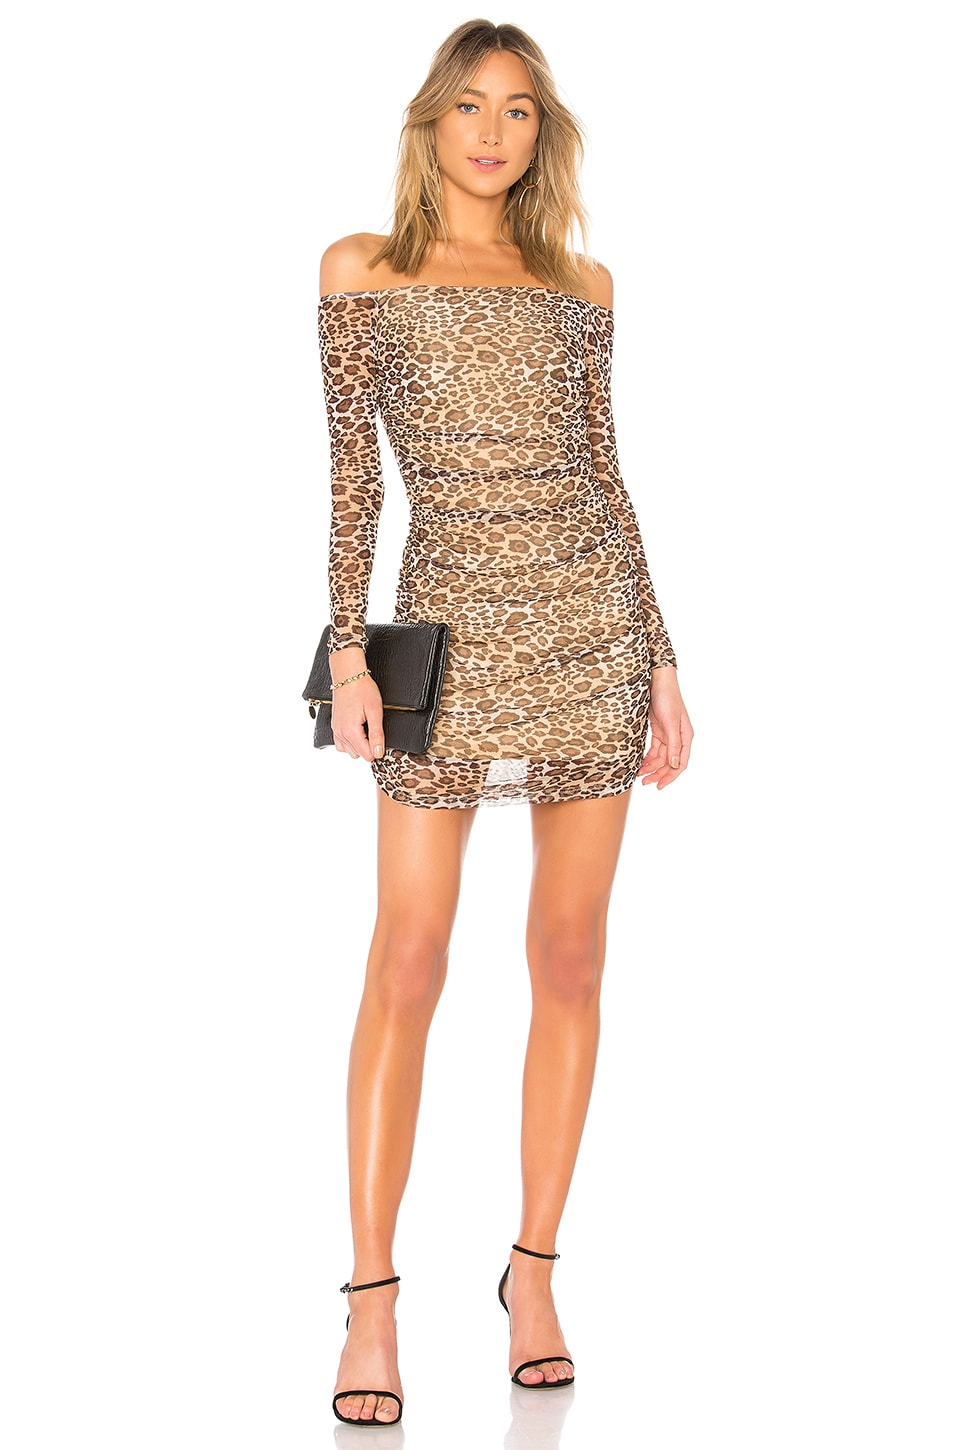 Adley Mesh Leopard Dress